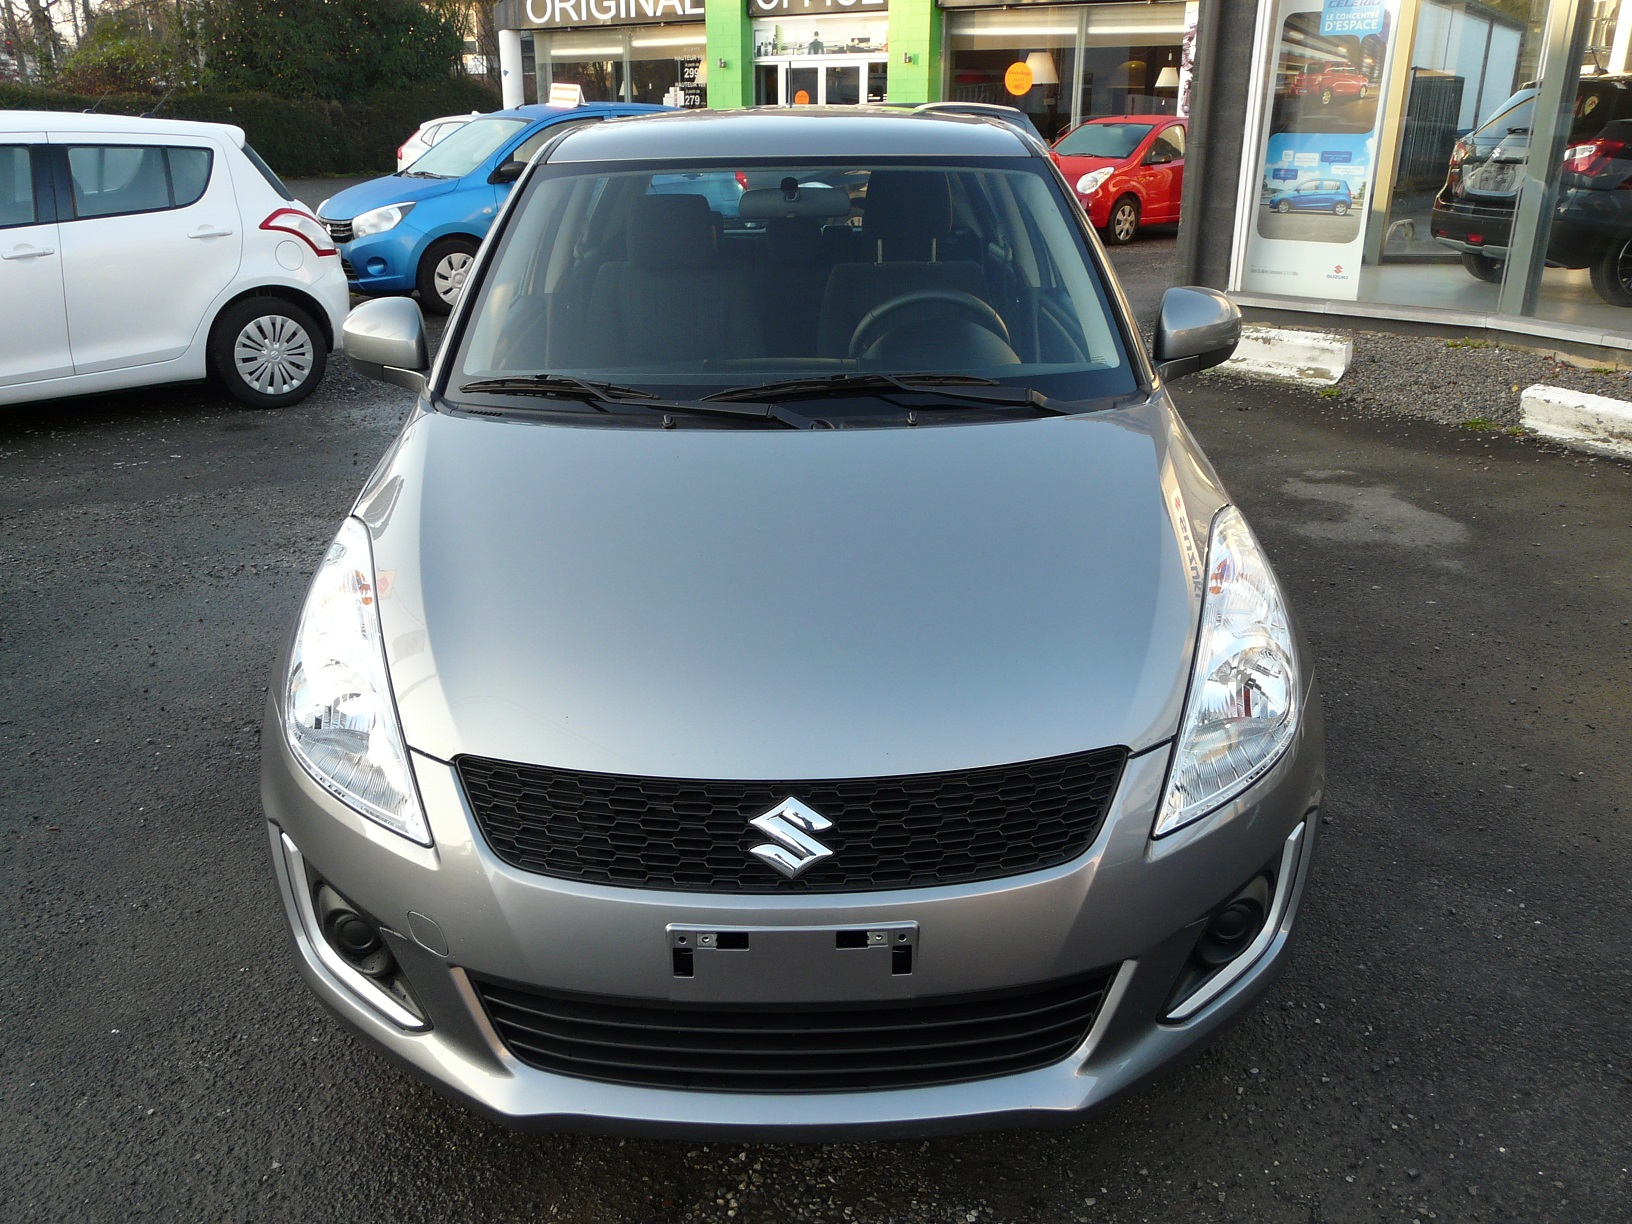 2019 Suzuki Swift photo - 4